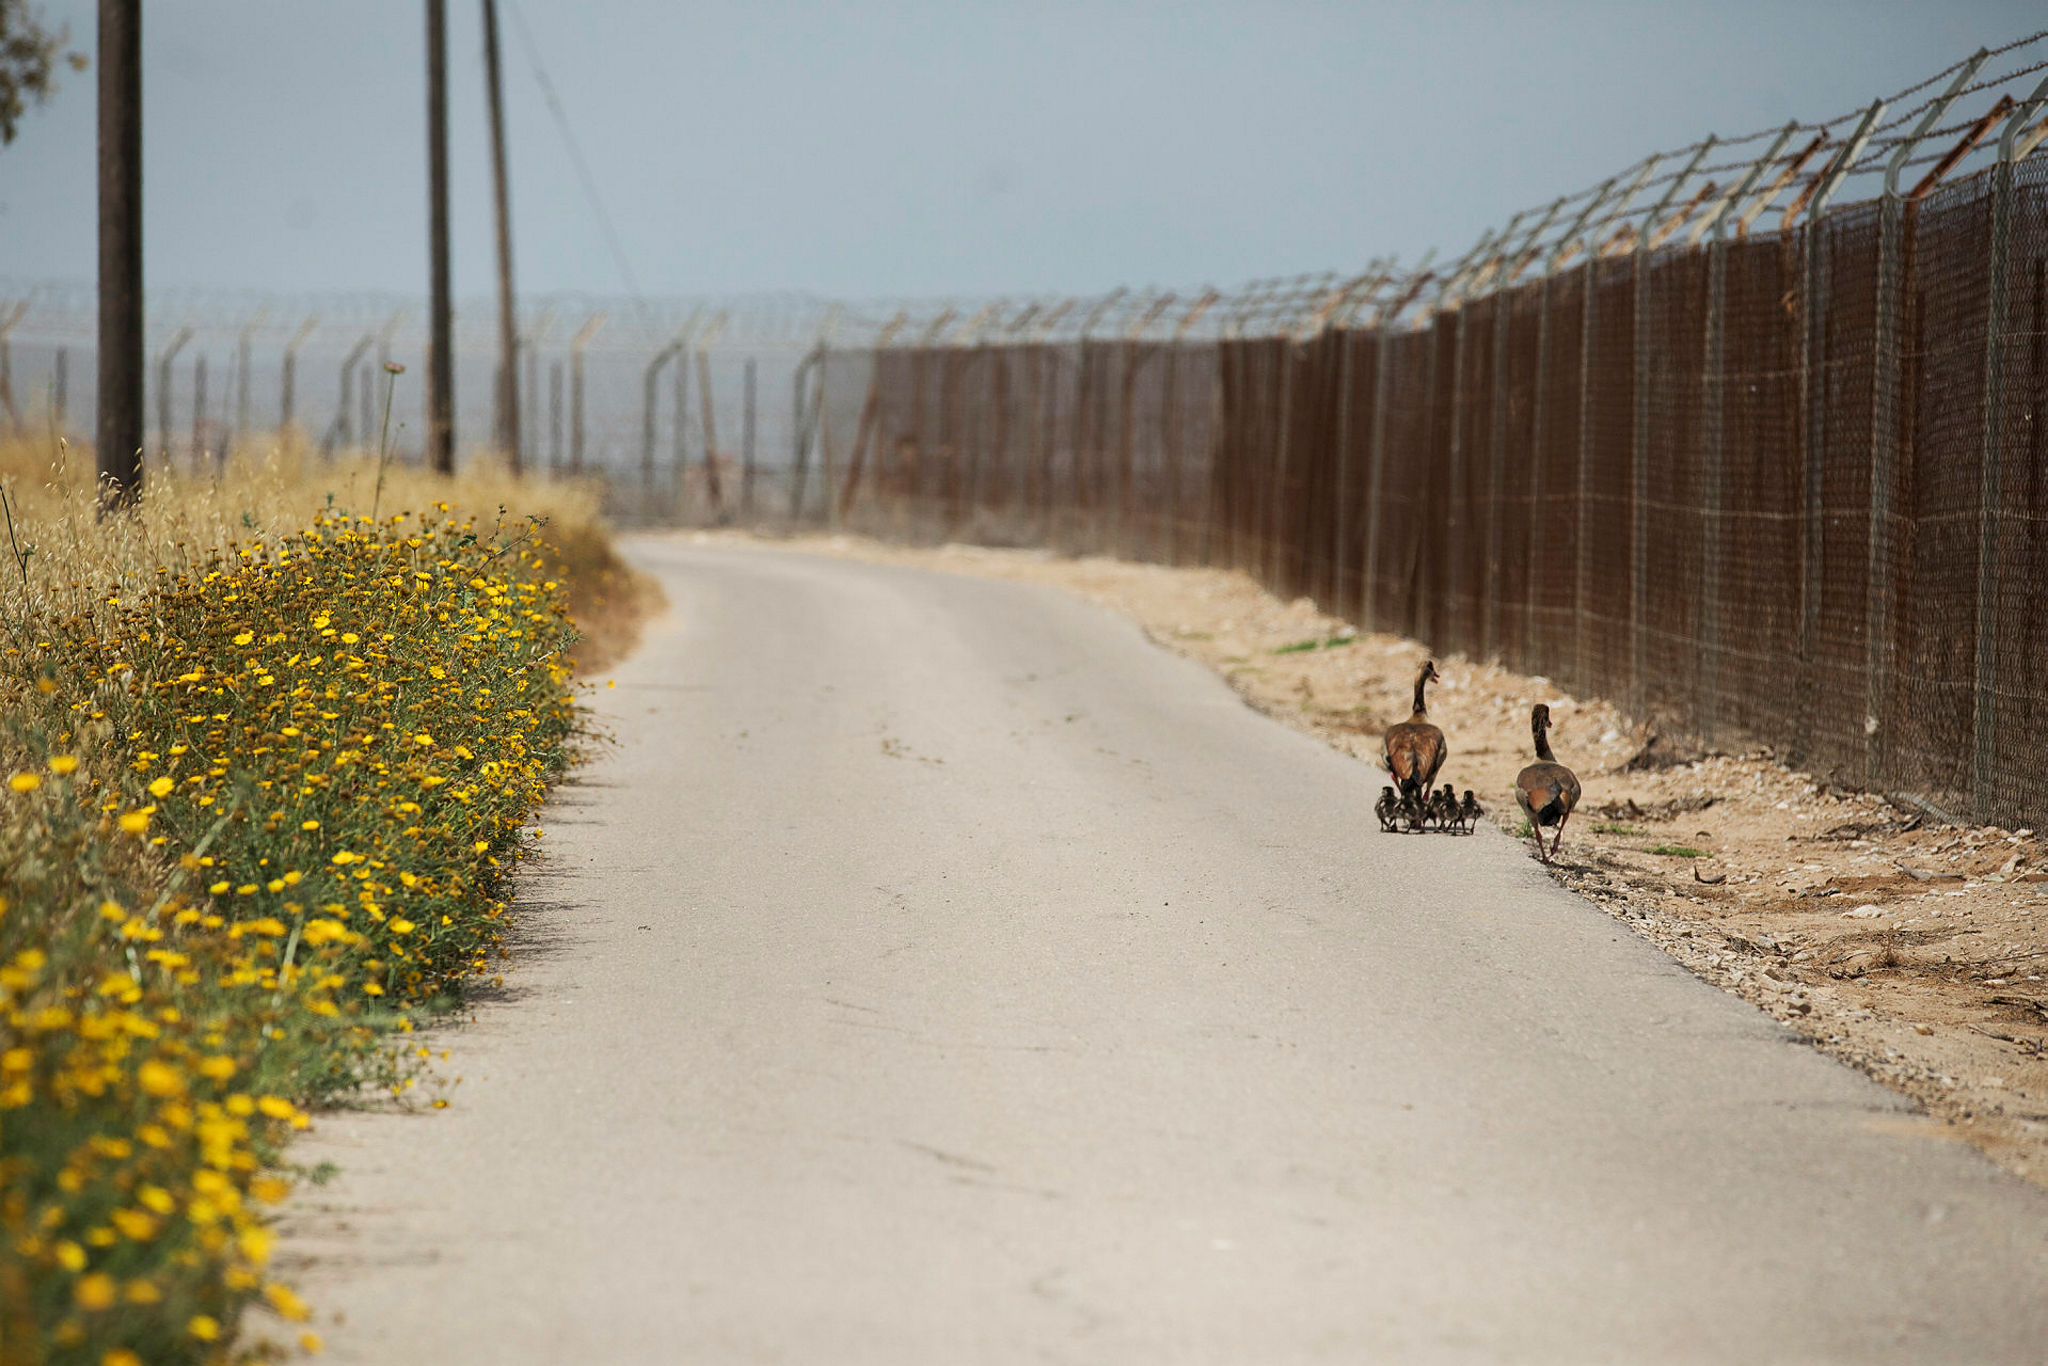 Alertness on the border of Gaza and Israel